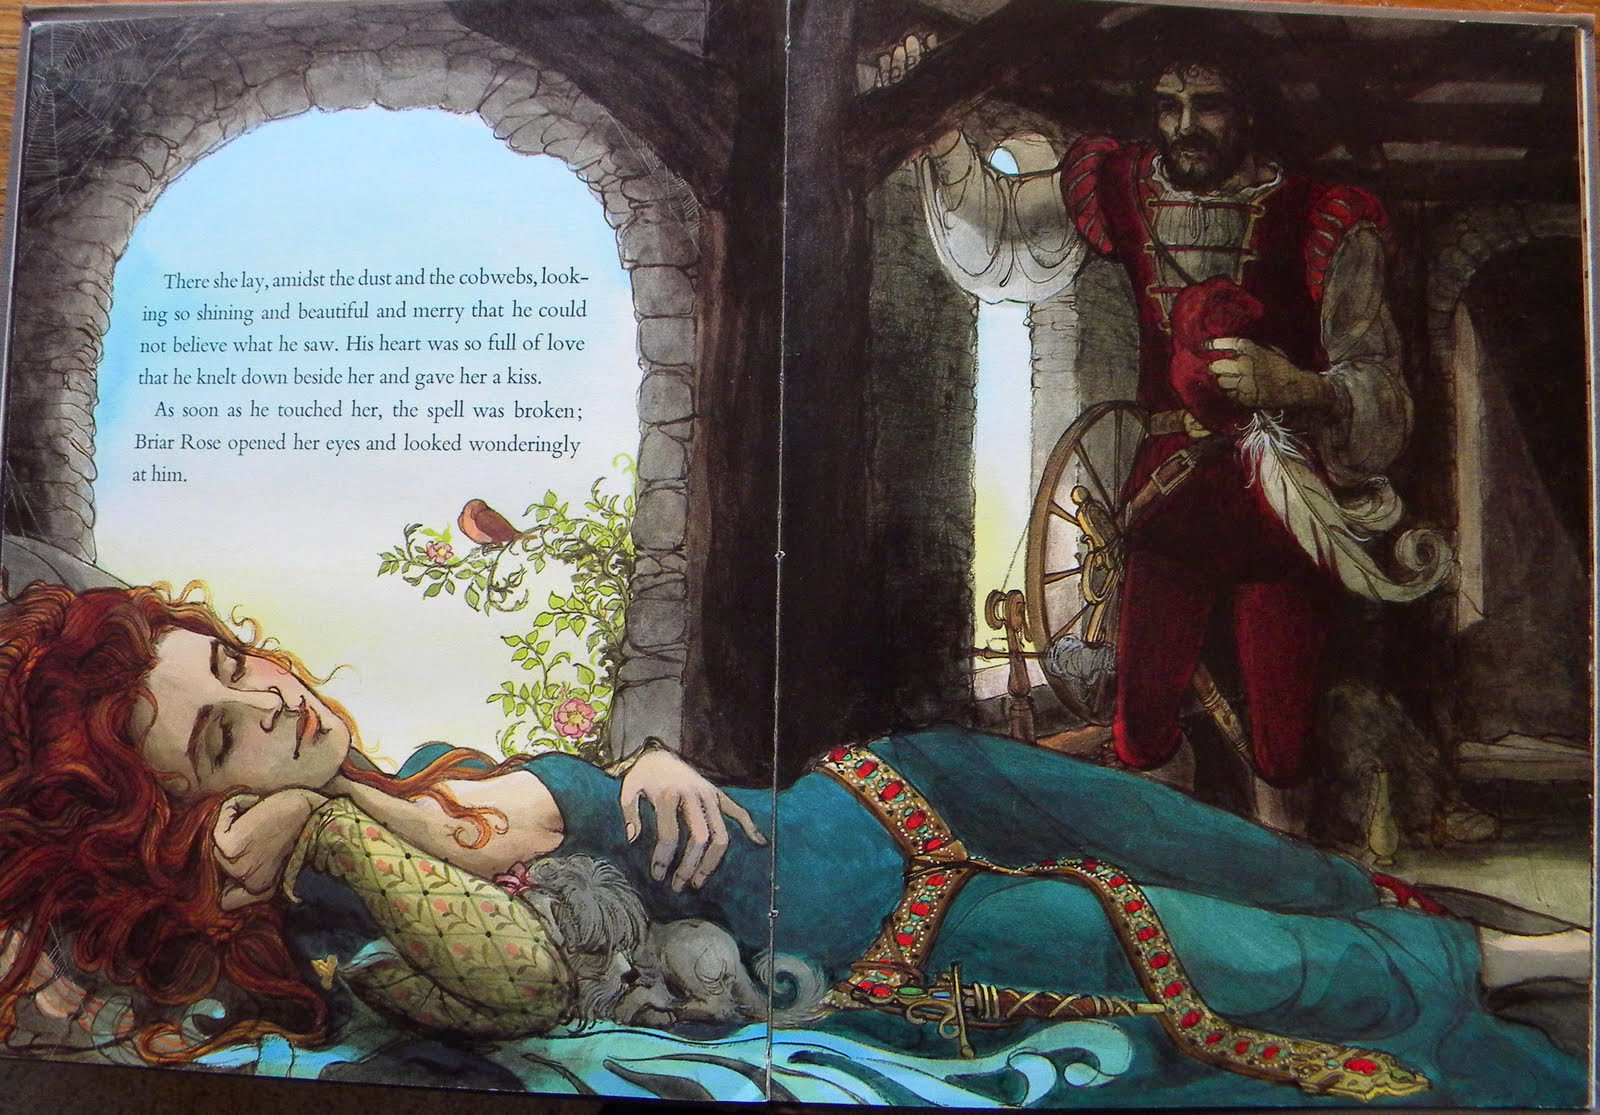 The classic sleeping beauty in jane yolens story of briar rose